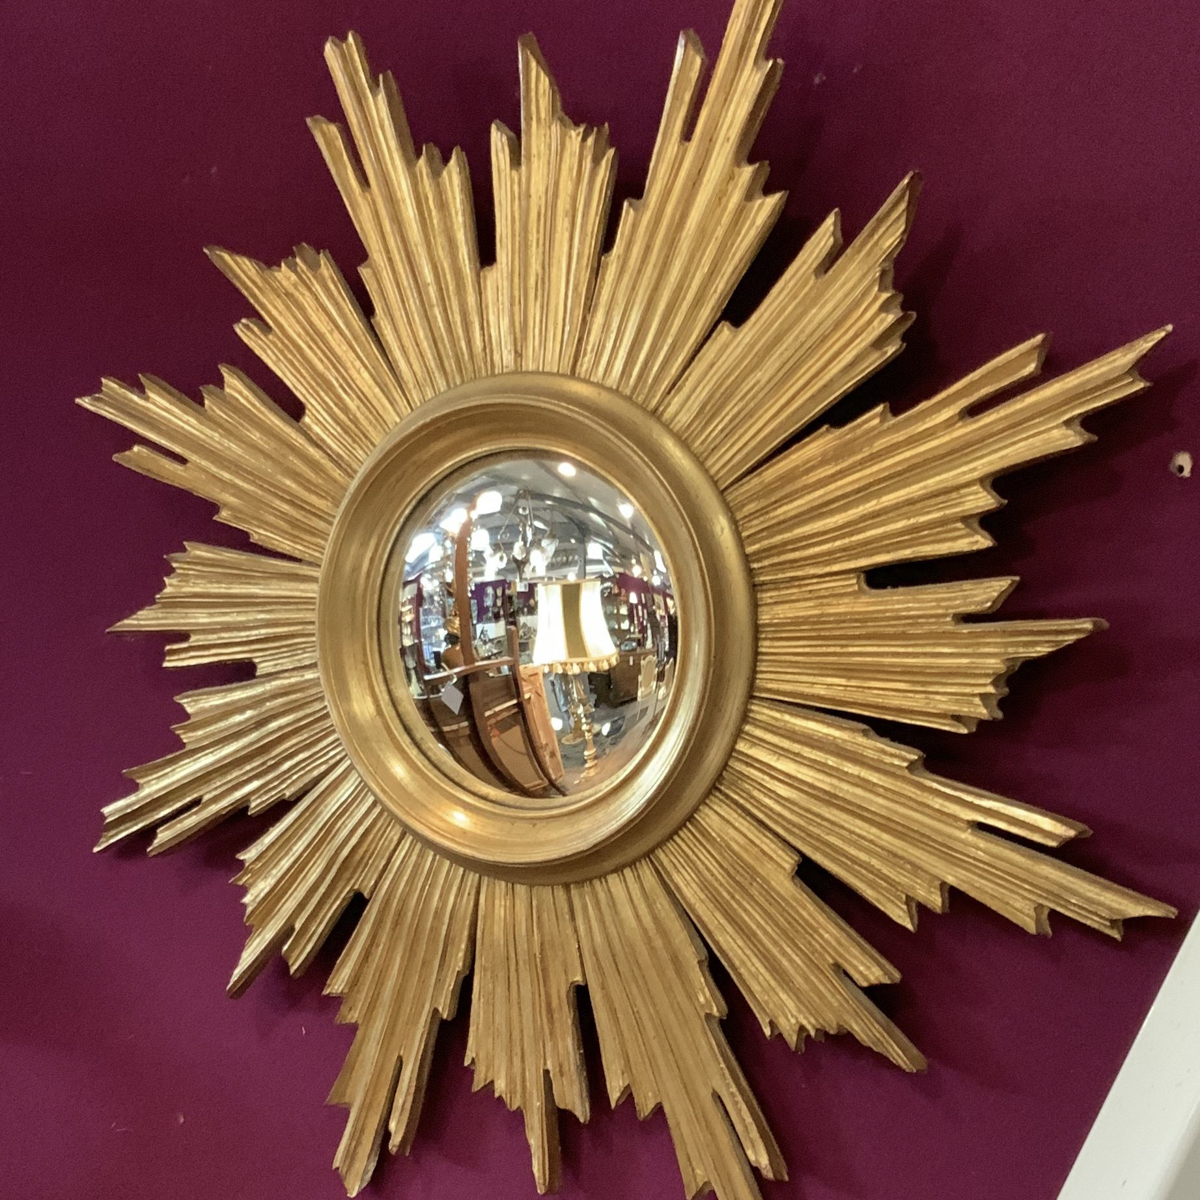 Sun Shaped Mirrors A Stunning Large Sun Burst Mirror France Belgium Antique Mirrors